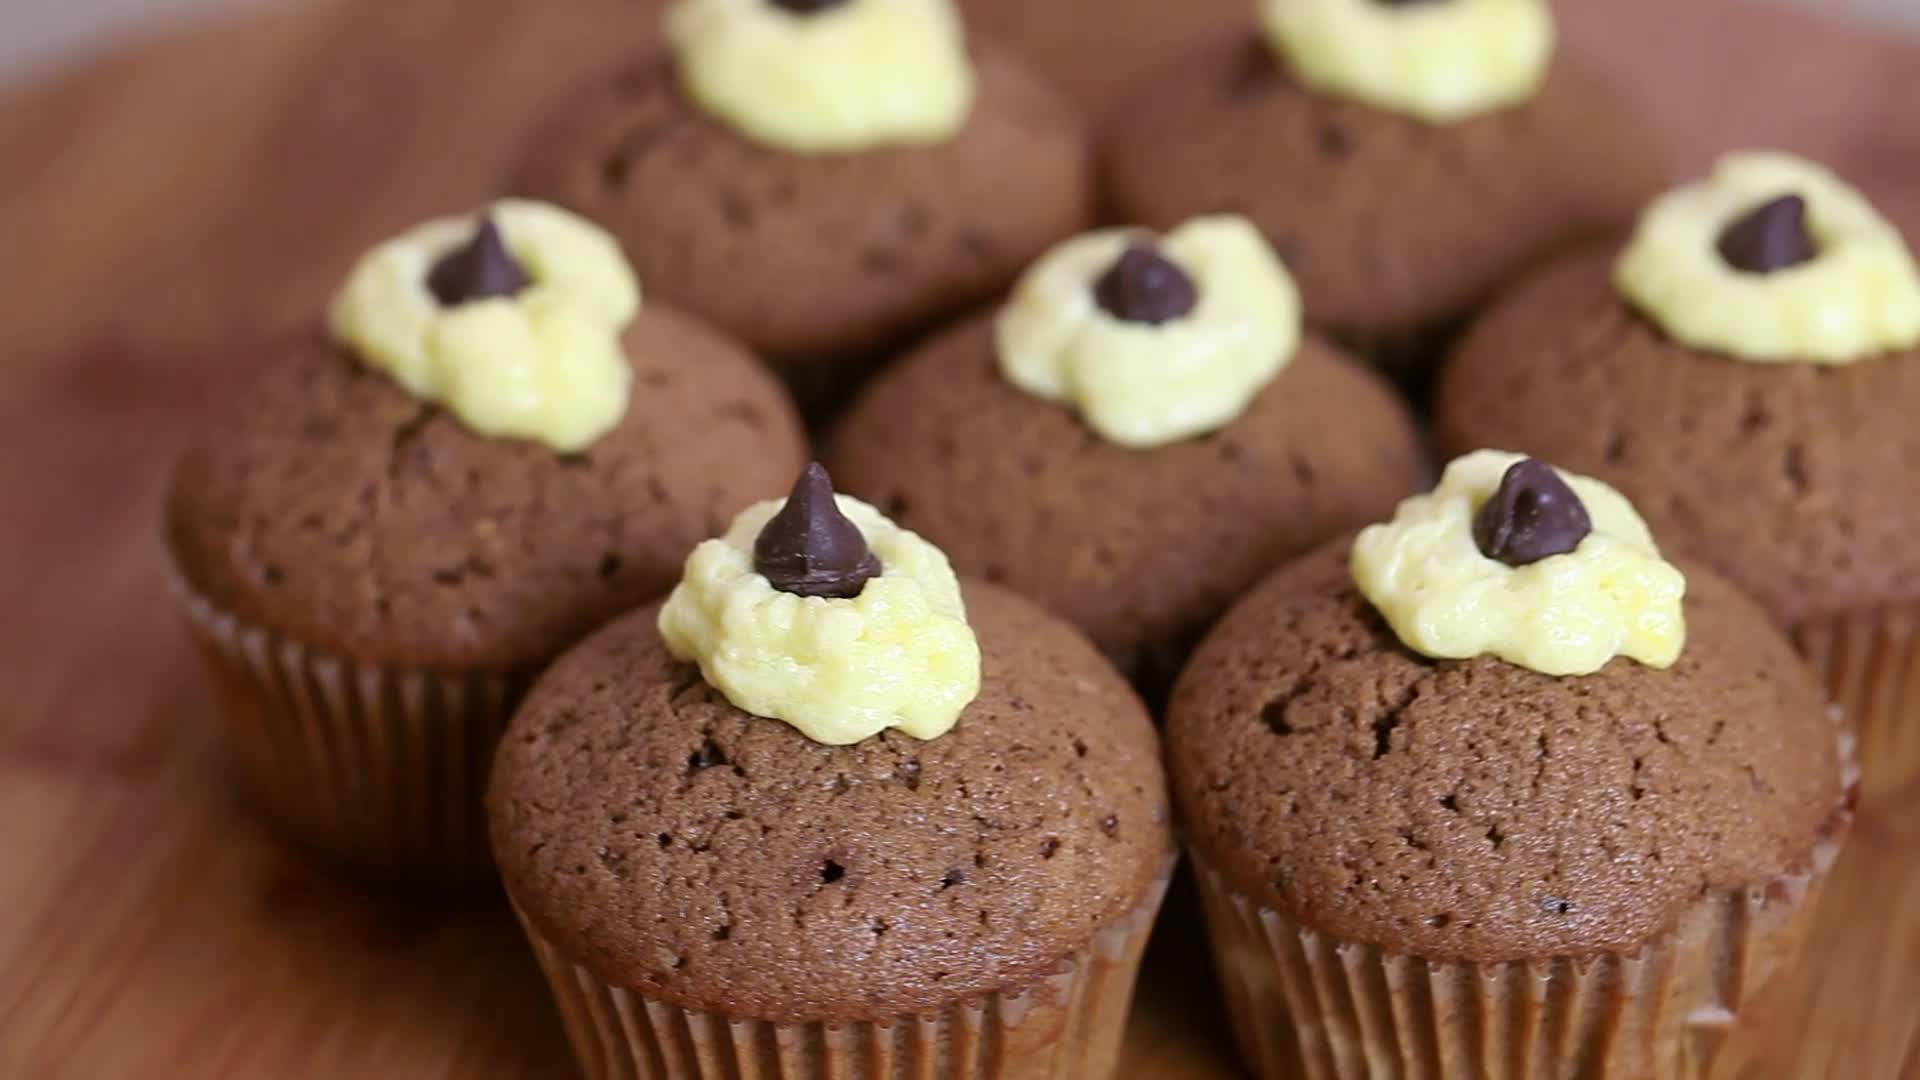 How To Make Chocolate Cupcakes (with Pictures)